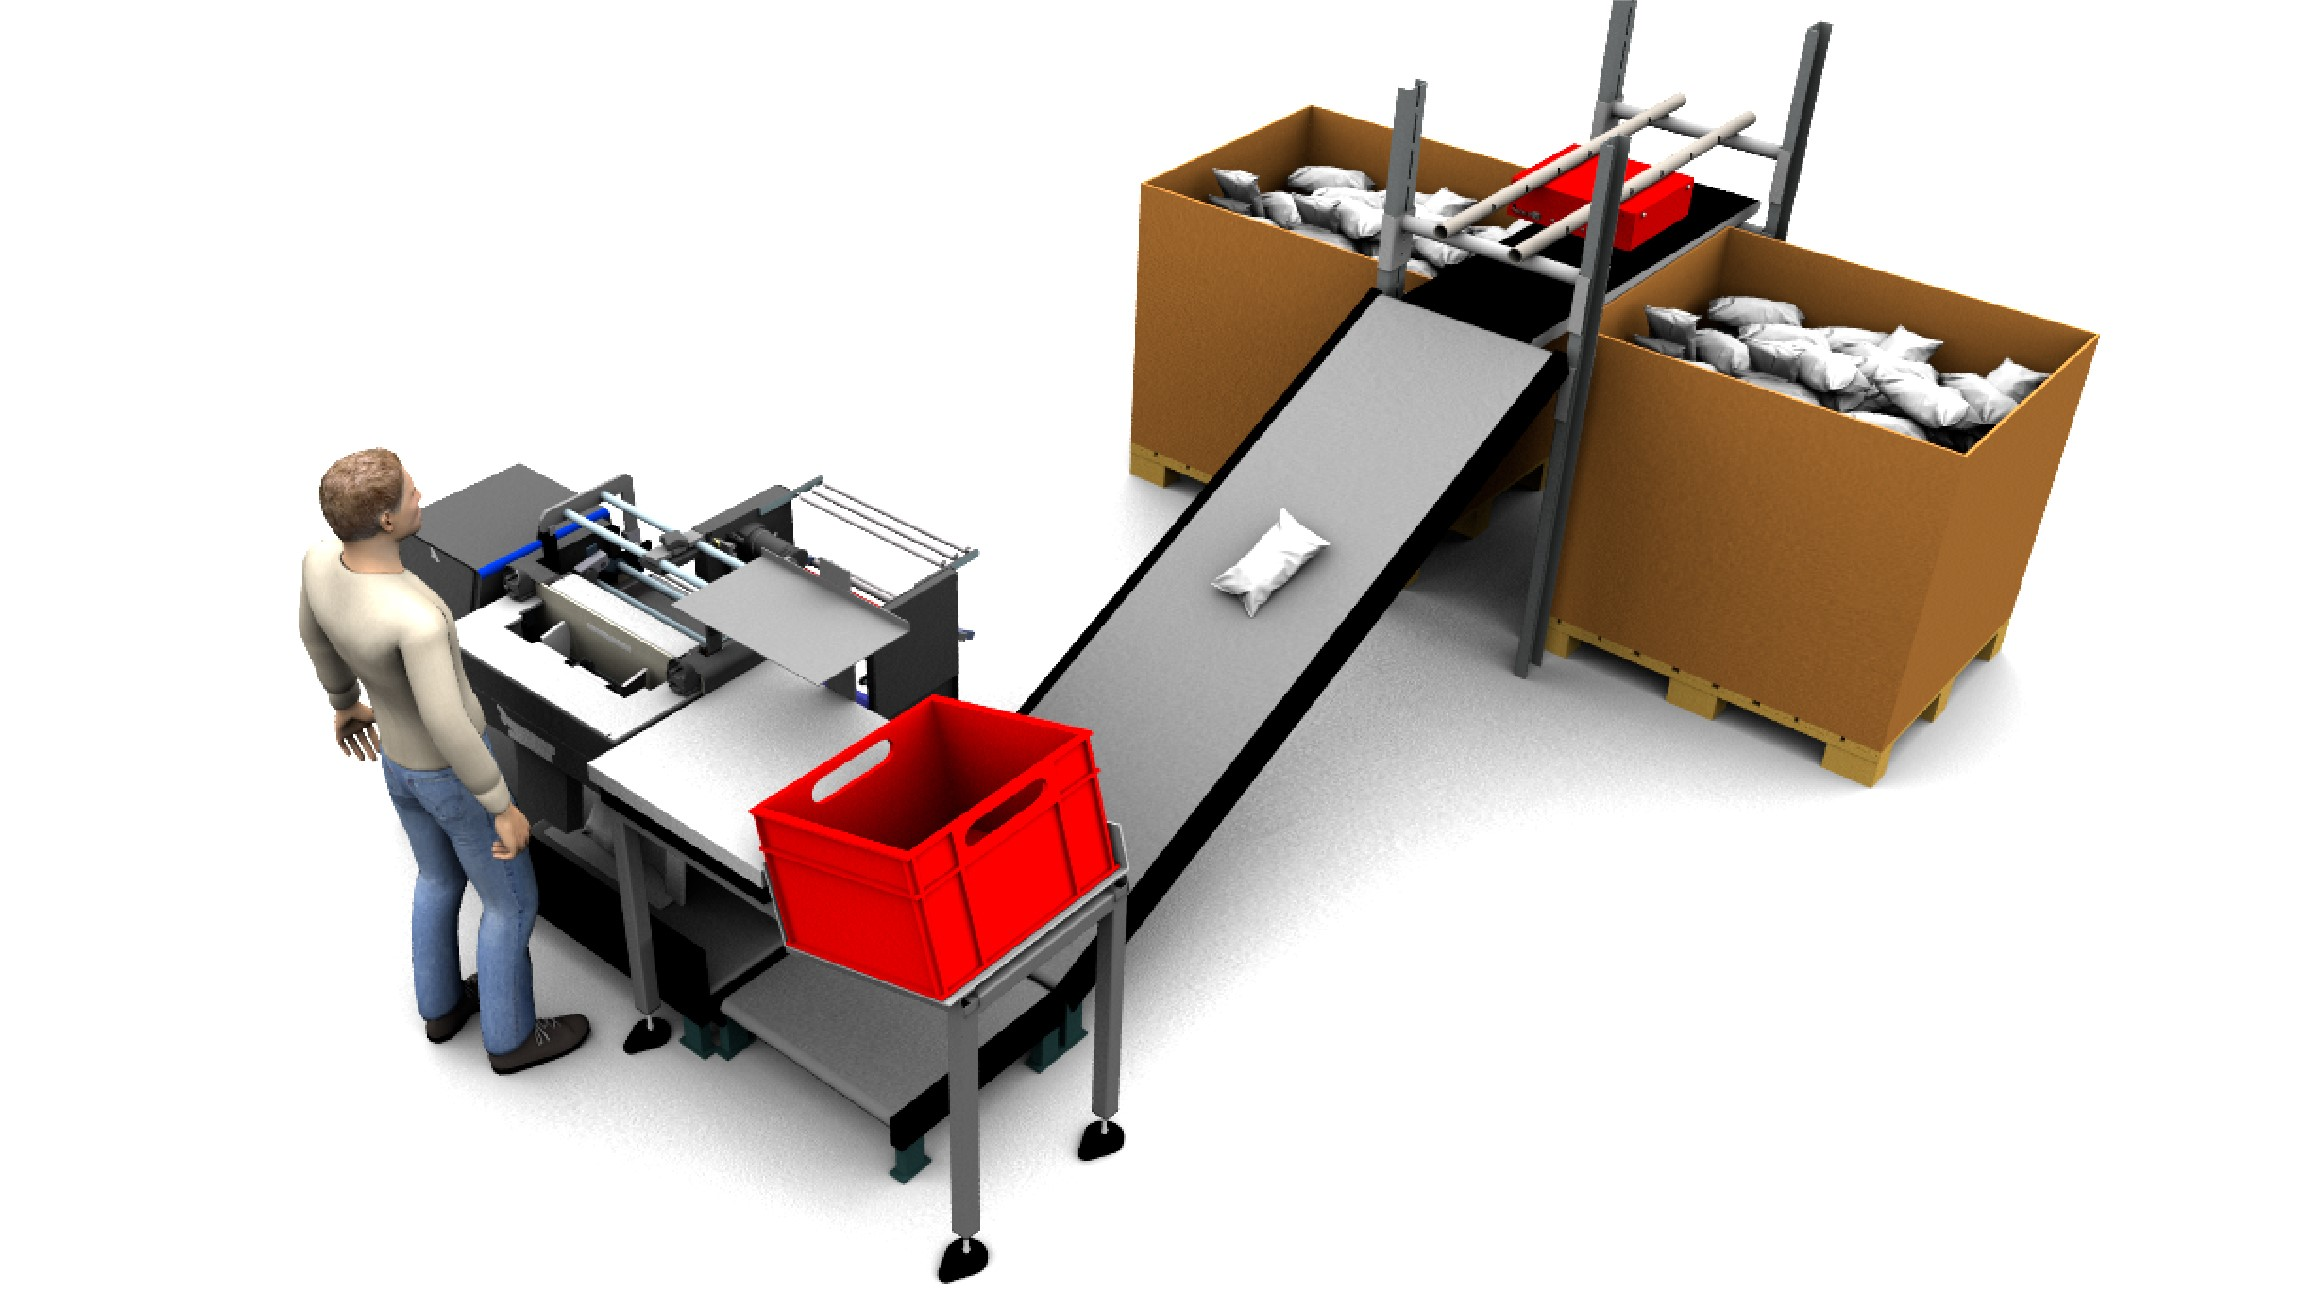 Global E-commerce Packaging Equipment Market 2020 Analysis, Types,  Applications, Forecast and COVID-19 Impact Analysis 2025 – The Daily  Chronicle